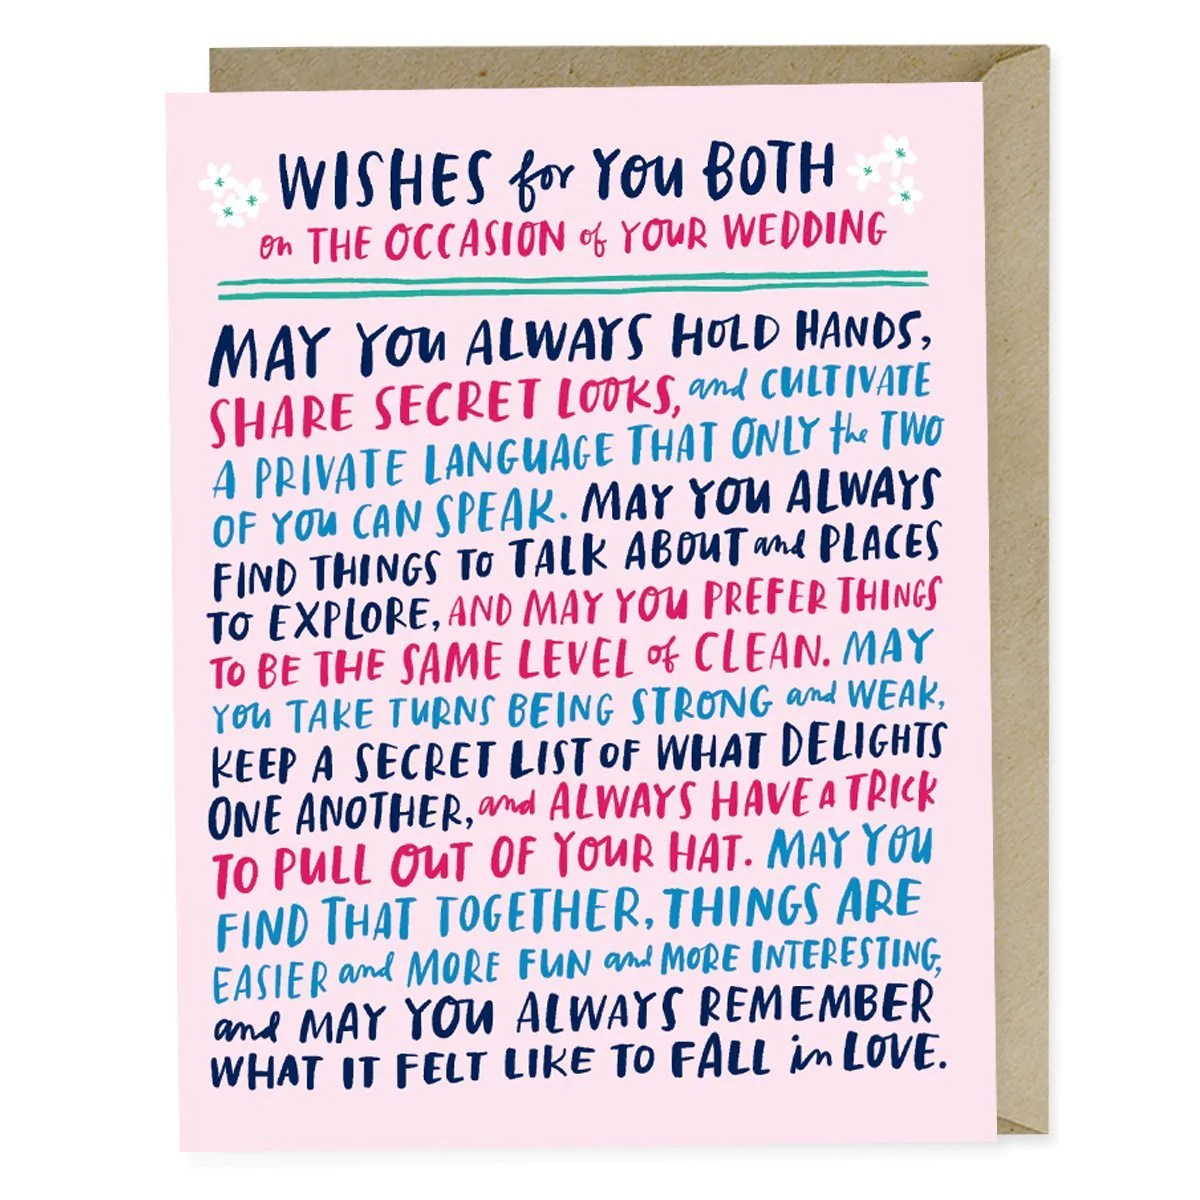 wishes for you both